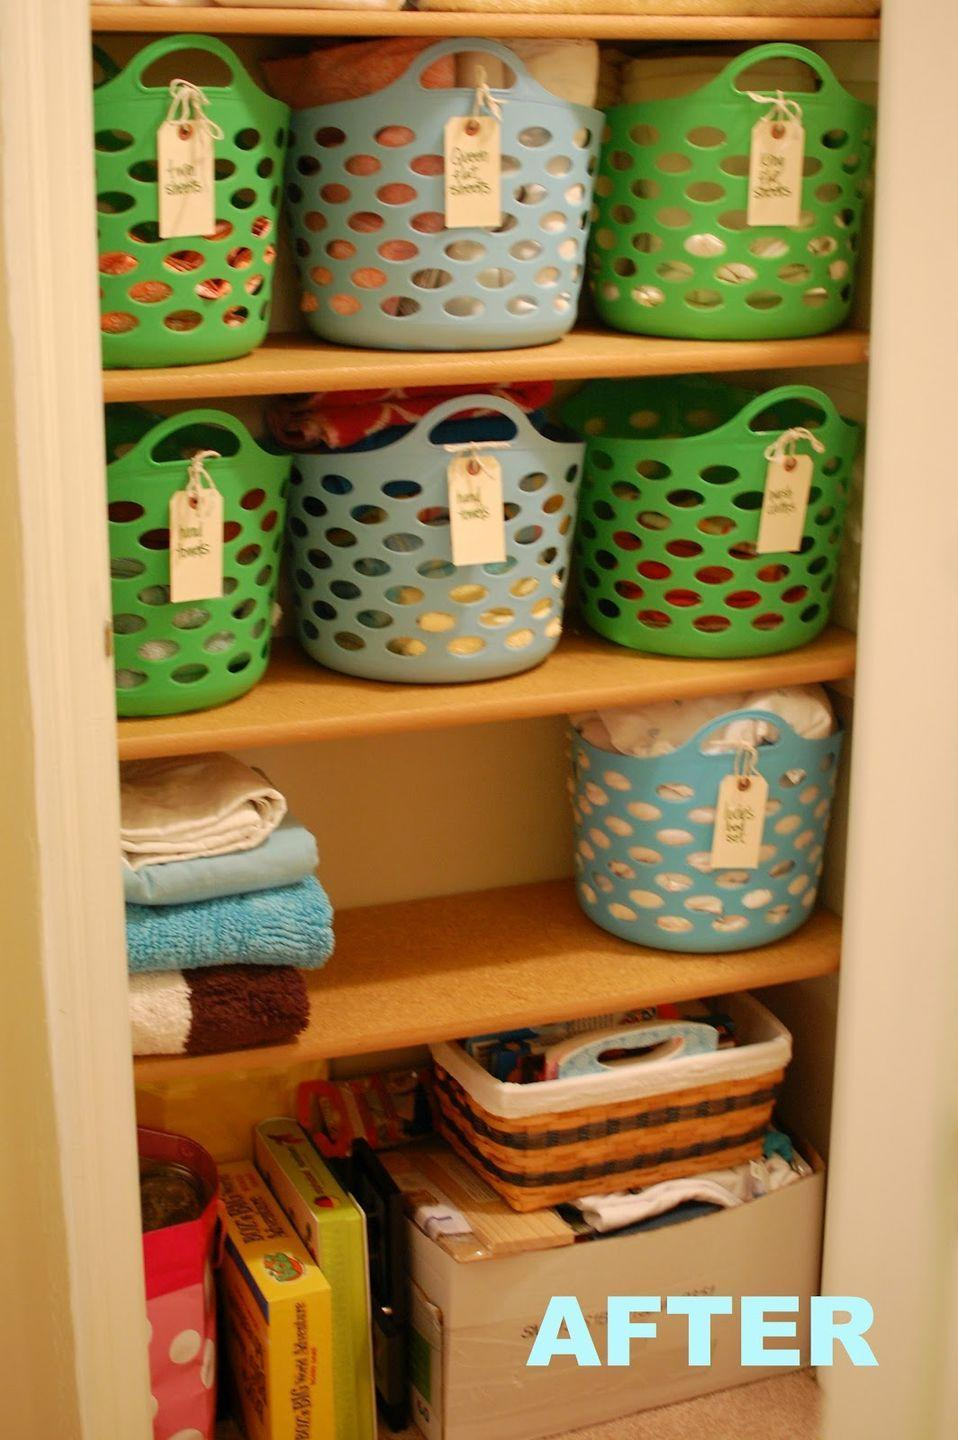 """<p>All you need to do to make your life way easier is invest in a few plastic baskets. Here, labels on the handle make it clear where twin sheets versus king sheets are stored.</p><p><em><a href=""""http://abirdandabean.com/2012/03/10-linen-closet-redo.html"""" rel=""""nofollow noopener"""" target=""""_blank"""" data-ylk=""""slk:See more at A Bird and a Bean »"""" class=""""link rapid-noclick-resp"""">See more at A Bird and a Bean »</a></em></p><p><strong>What you'll need: </strong><span class=""""redactor-invisible-space"""">colorful bins, $3, <a href=""""https://www.amazon.com/Wa-Desktop-storage-Colorful-Organizer/dp/B073B1SMQT/?tag=syn-yahoo-20&ascsubtag=%5Bartid%7C2139.g.36060899%5Bsrc%7Cyahoo-us"""" rel=""""nofollow noopener"""" target=""""_blank"""" data-ylk=""""slk:amazon.com"""" class=""""link rapid-noclick-resp"""">amazon.com</a></span><br></p>"""